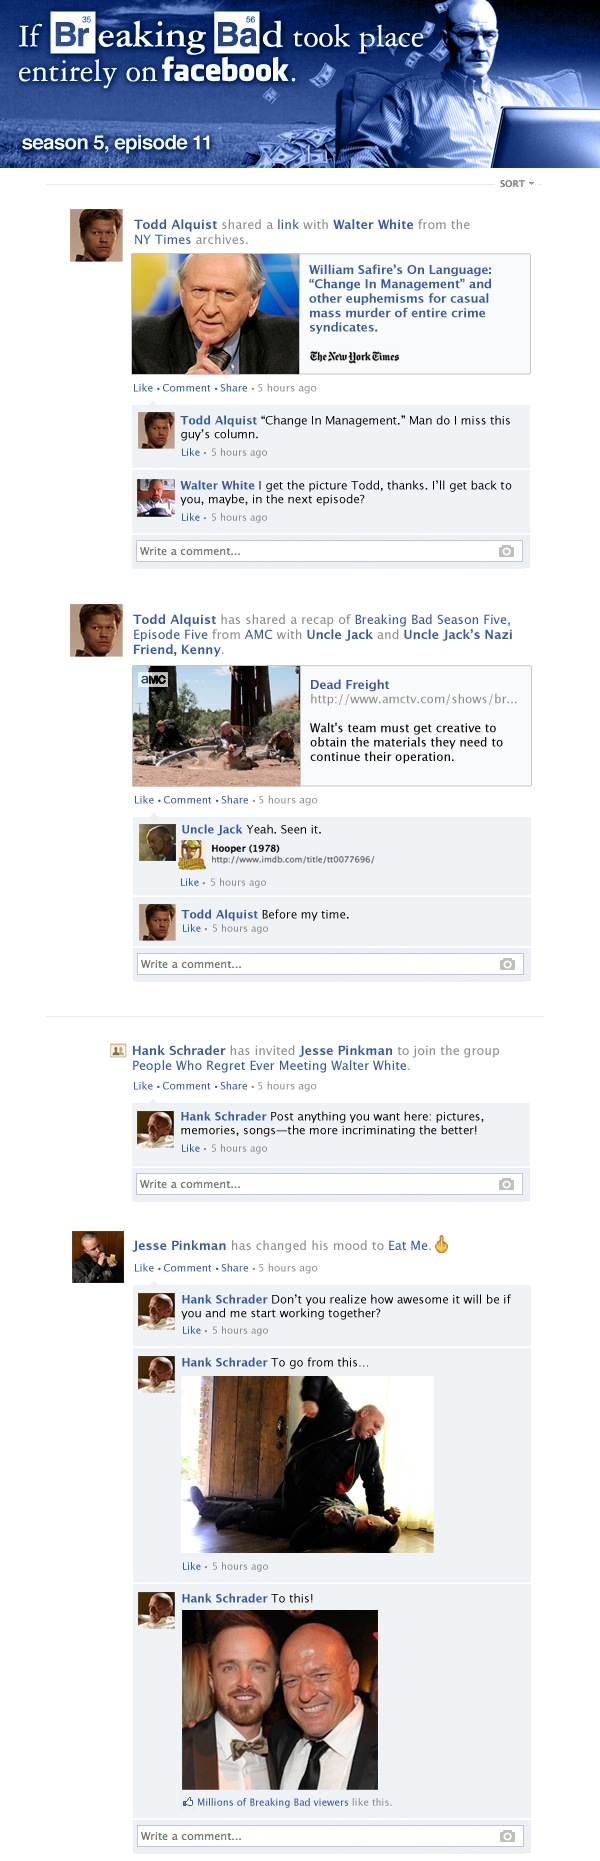 If Breaking Bad took place entirely on Facebook - Season 5, Episode 11.